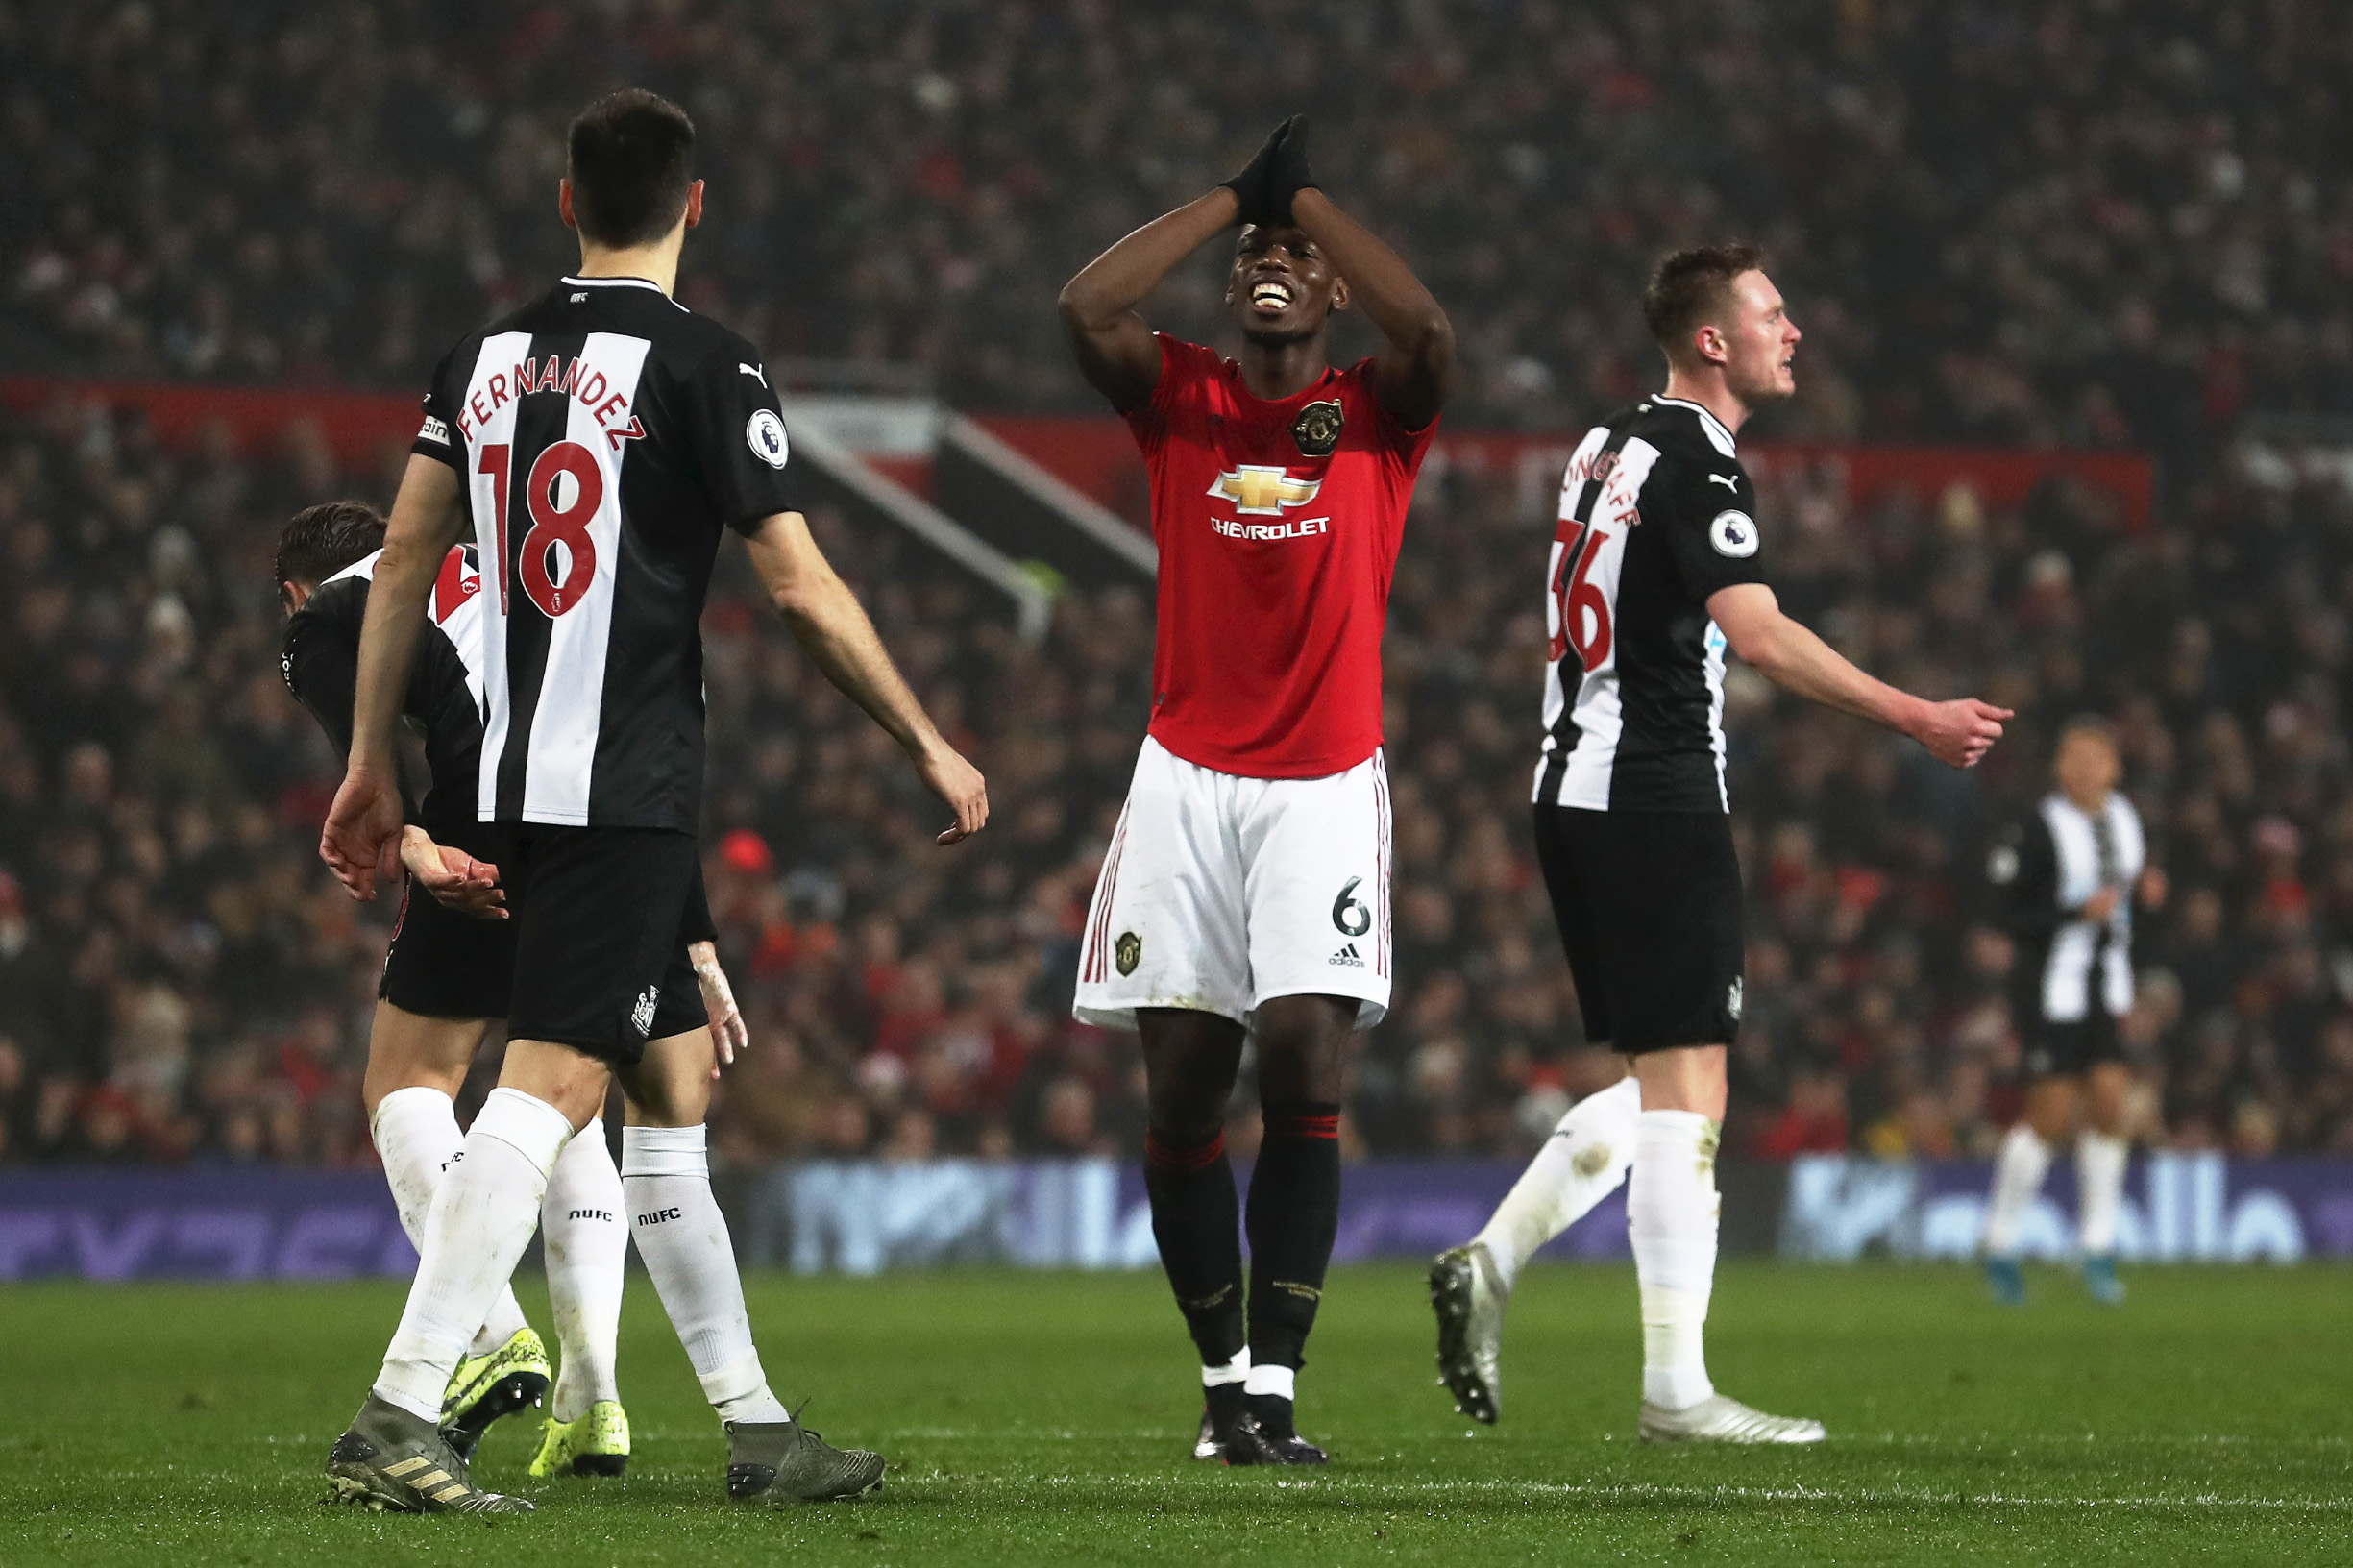 MANCHESTER, ENGLAND - DECEMBER 26: Paul Pogba of Manchester United reacts during the Premier League match between Manchester United and Newcastle United at Old Trafford on December 26, 2019 in Manchester, United Kingdom. (Photo by Ian MacNicol/Getty Images)